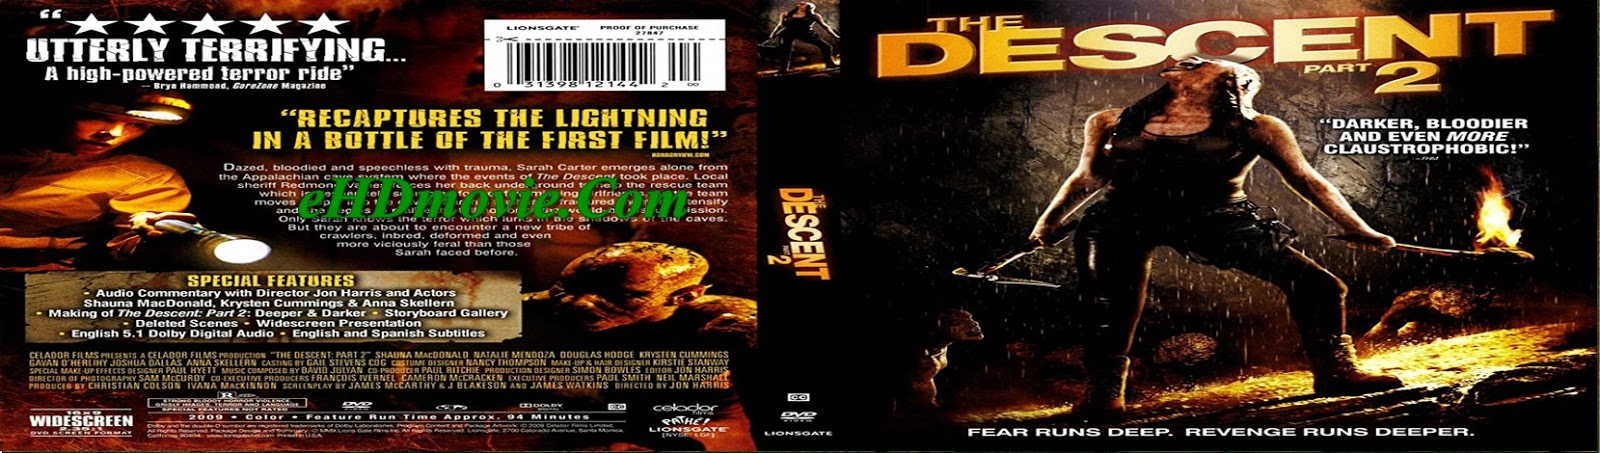 The Descent Part 2 2009 Full Movie Dual Audio [Hindi – English] 720p - 480p ORG BRRip 300MB - 600MB ESubs Free Download